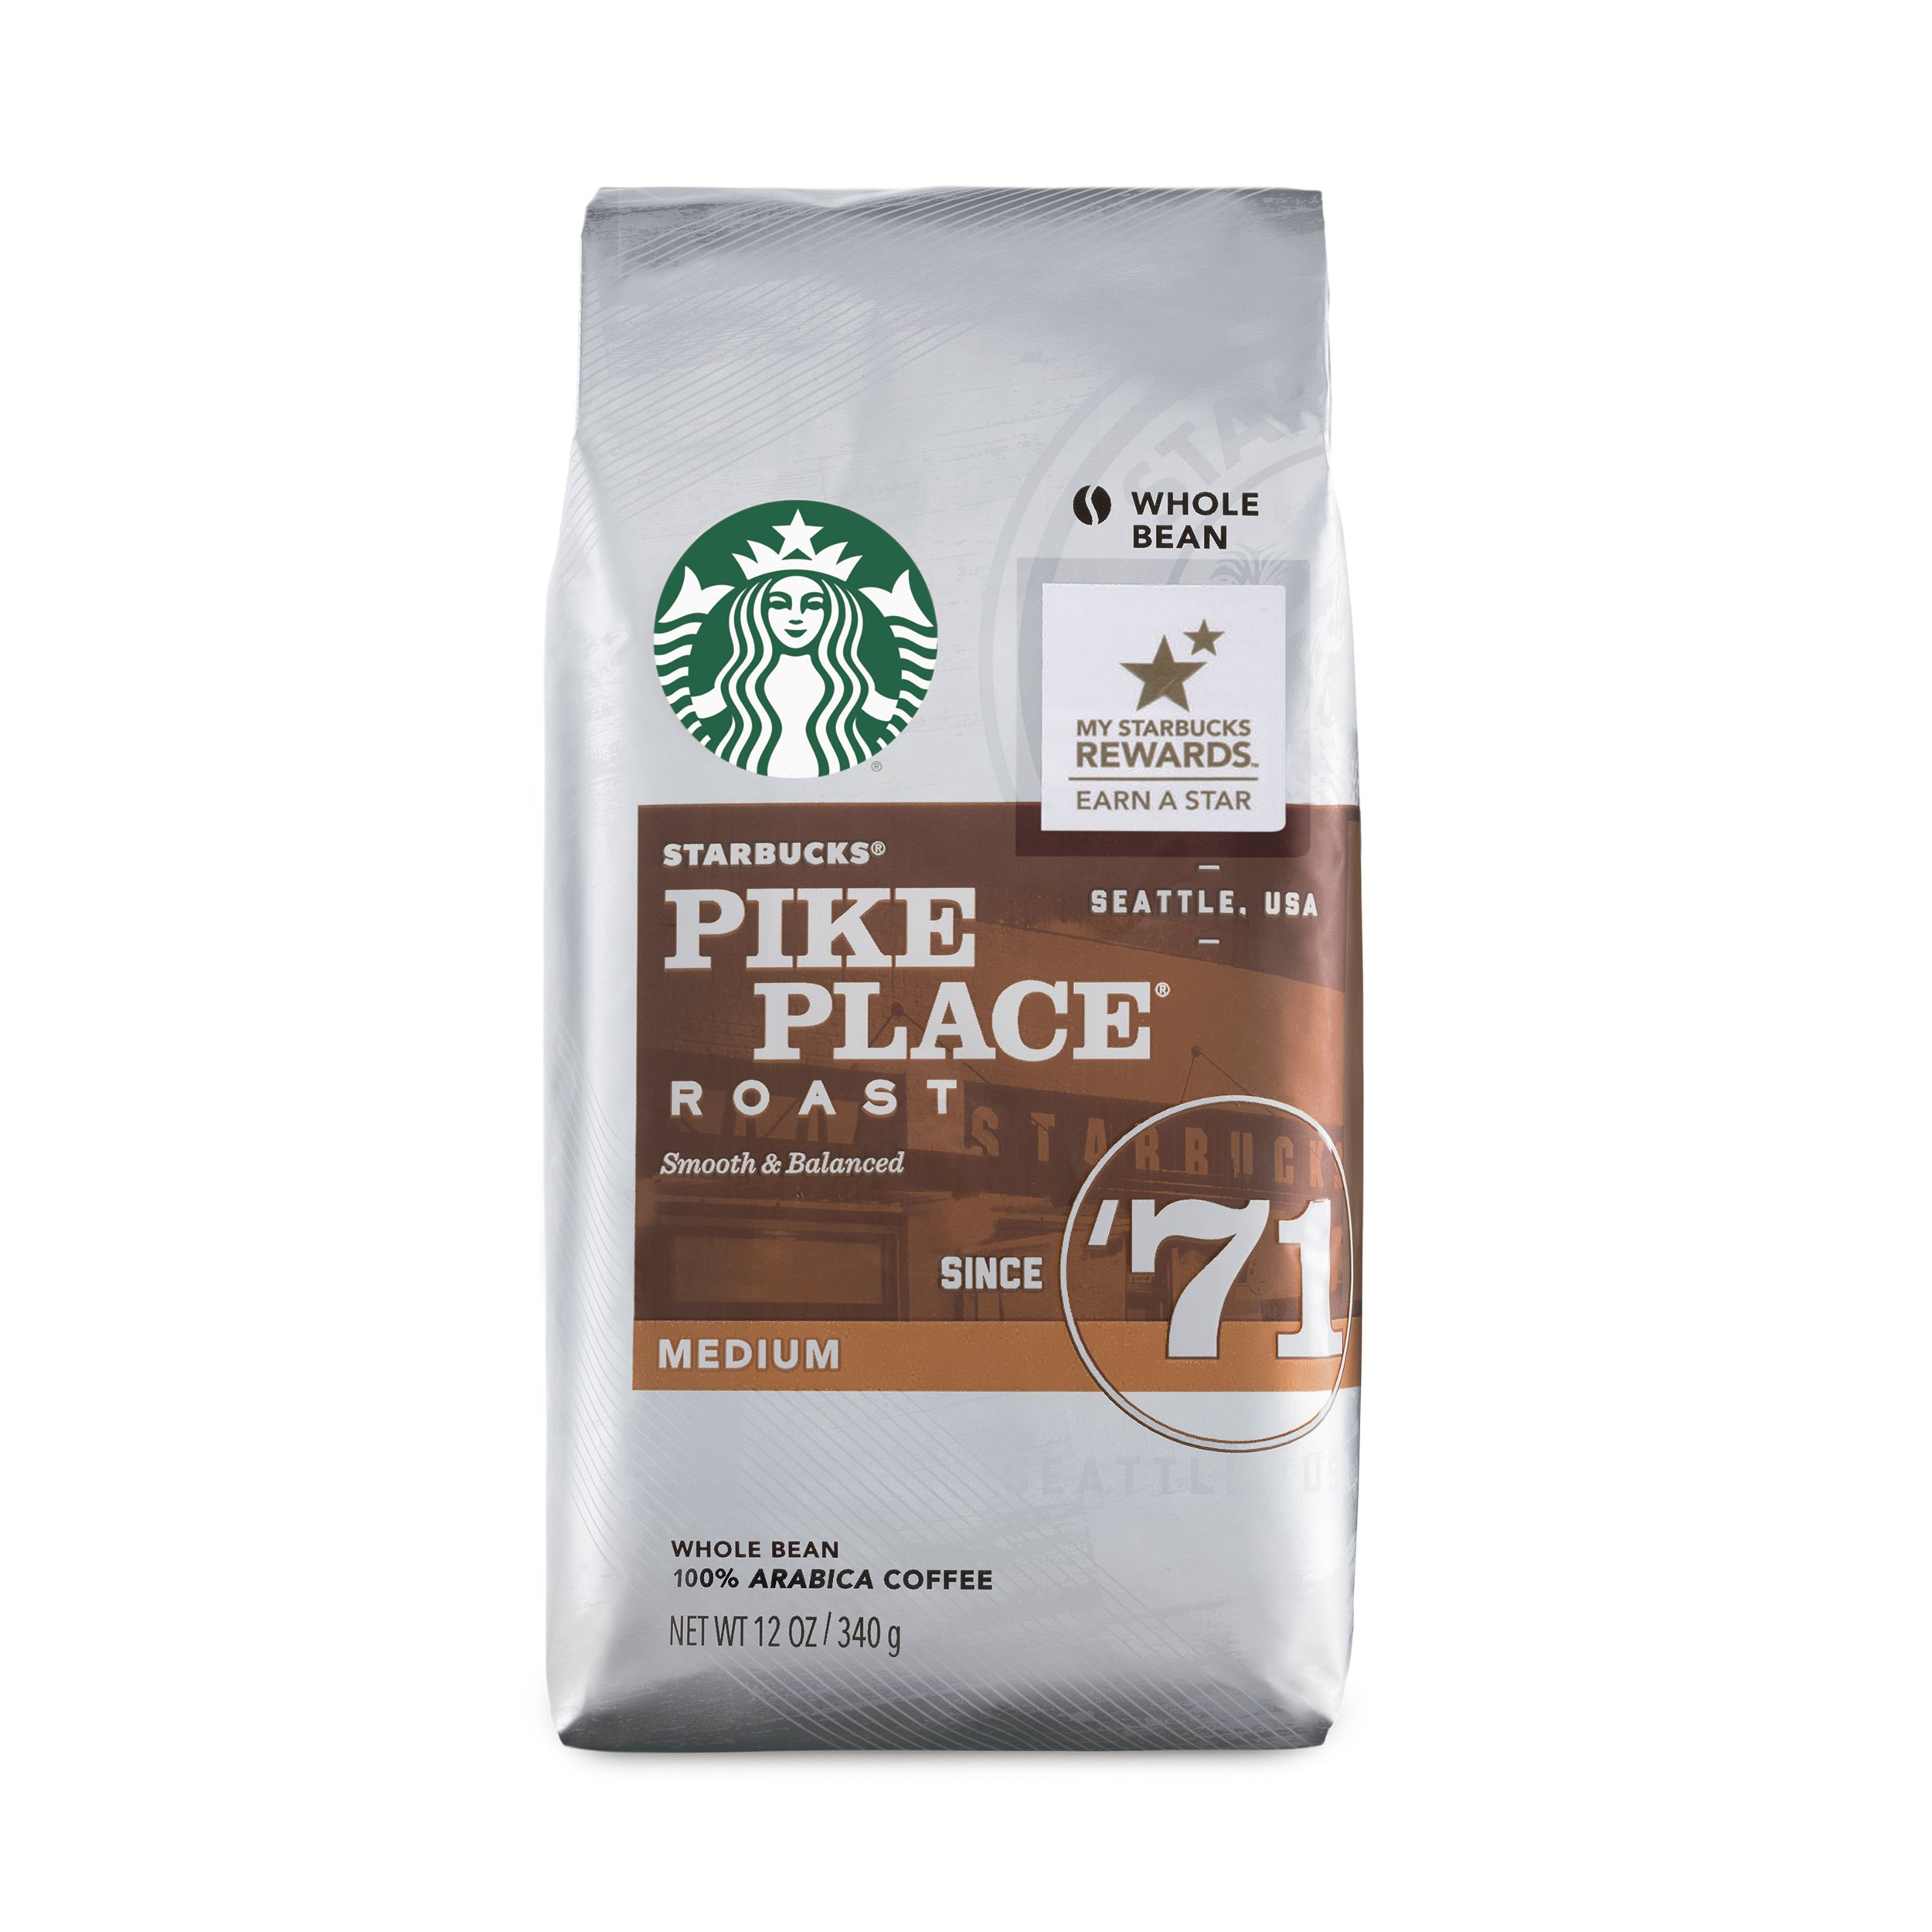 Starbucks Pike Place Roast Coffee Medium Roast Whole Bean Coffee, 12-Ounce Bag (Pack of 6) by Starbucks